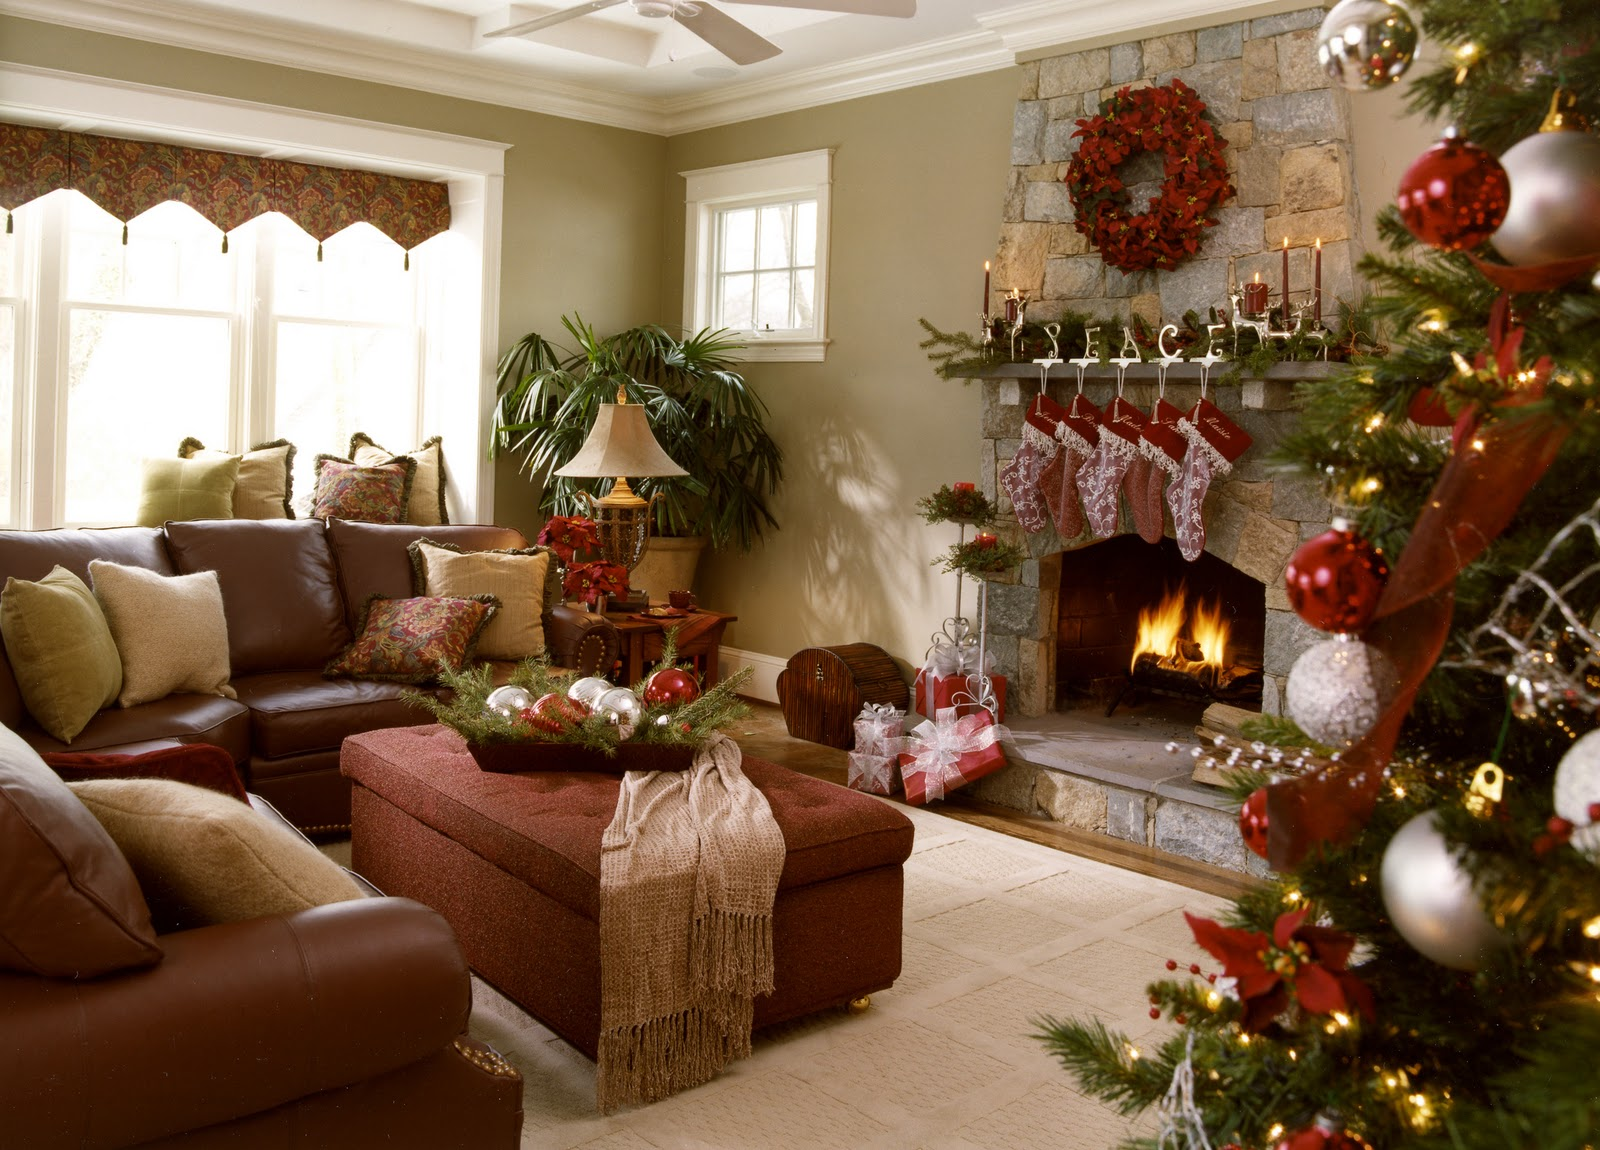 Holiday Decorations Ideas Part - 39: Holiday Decorating